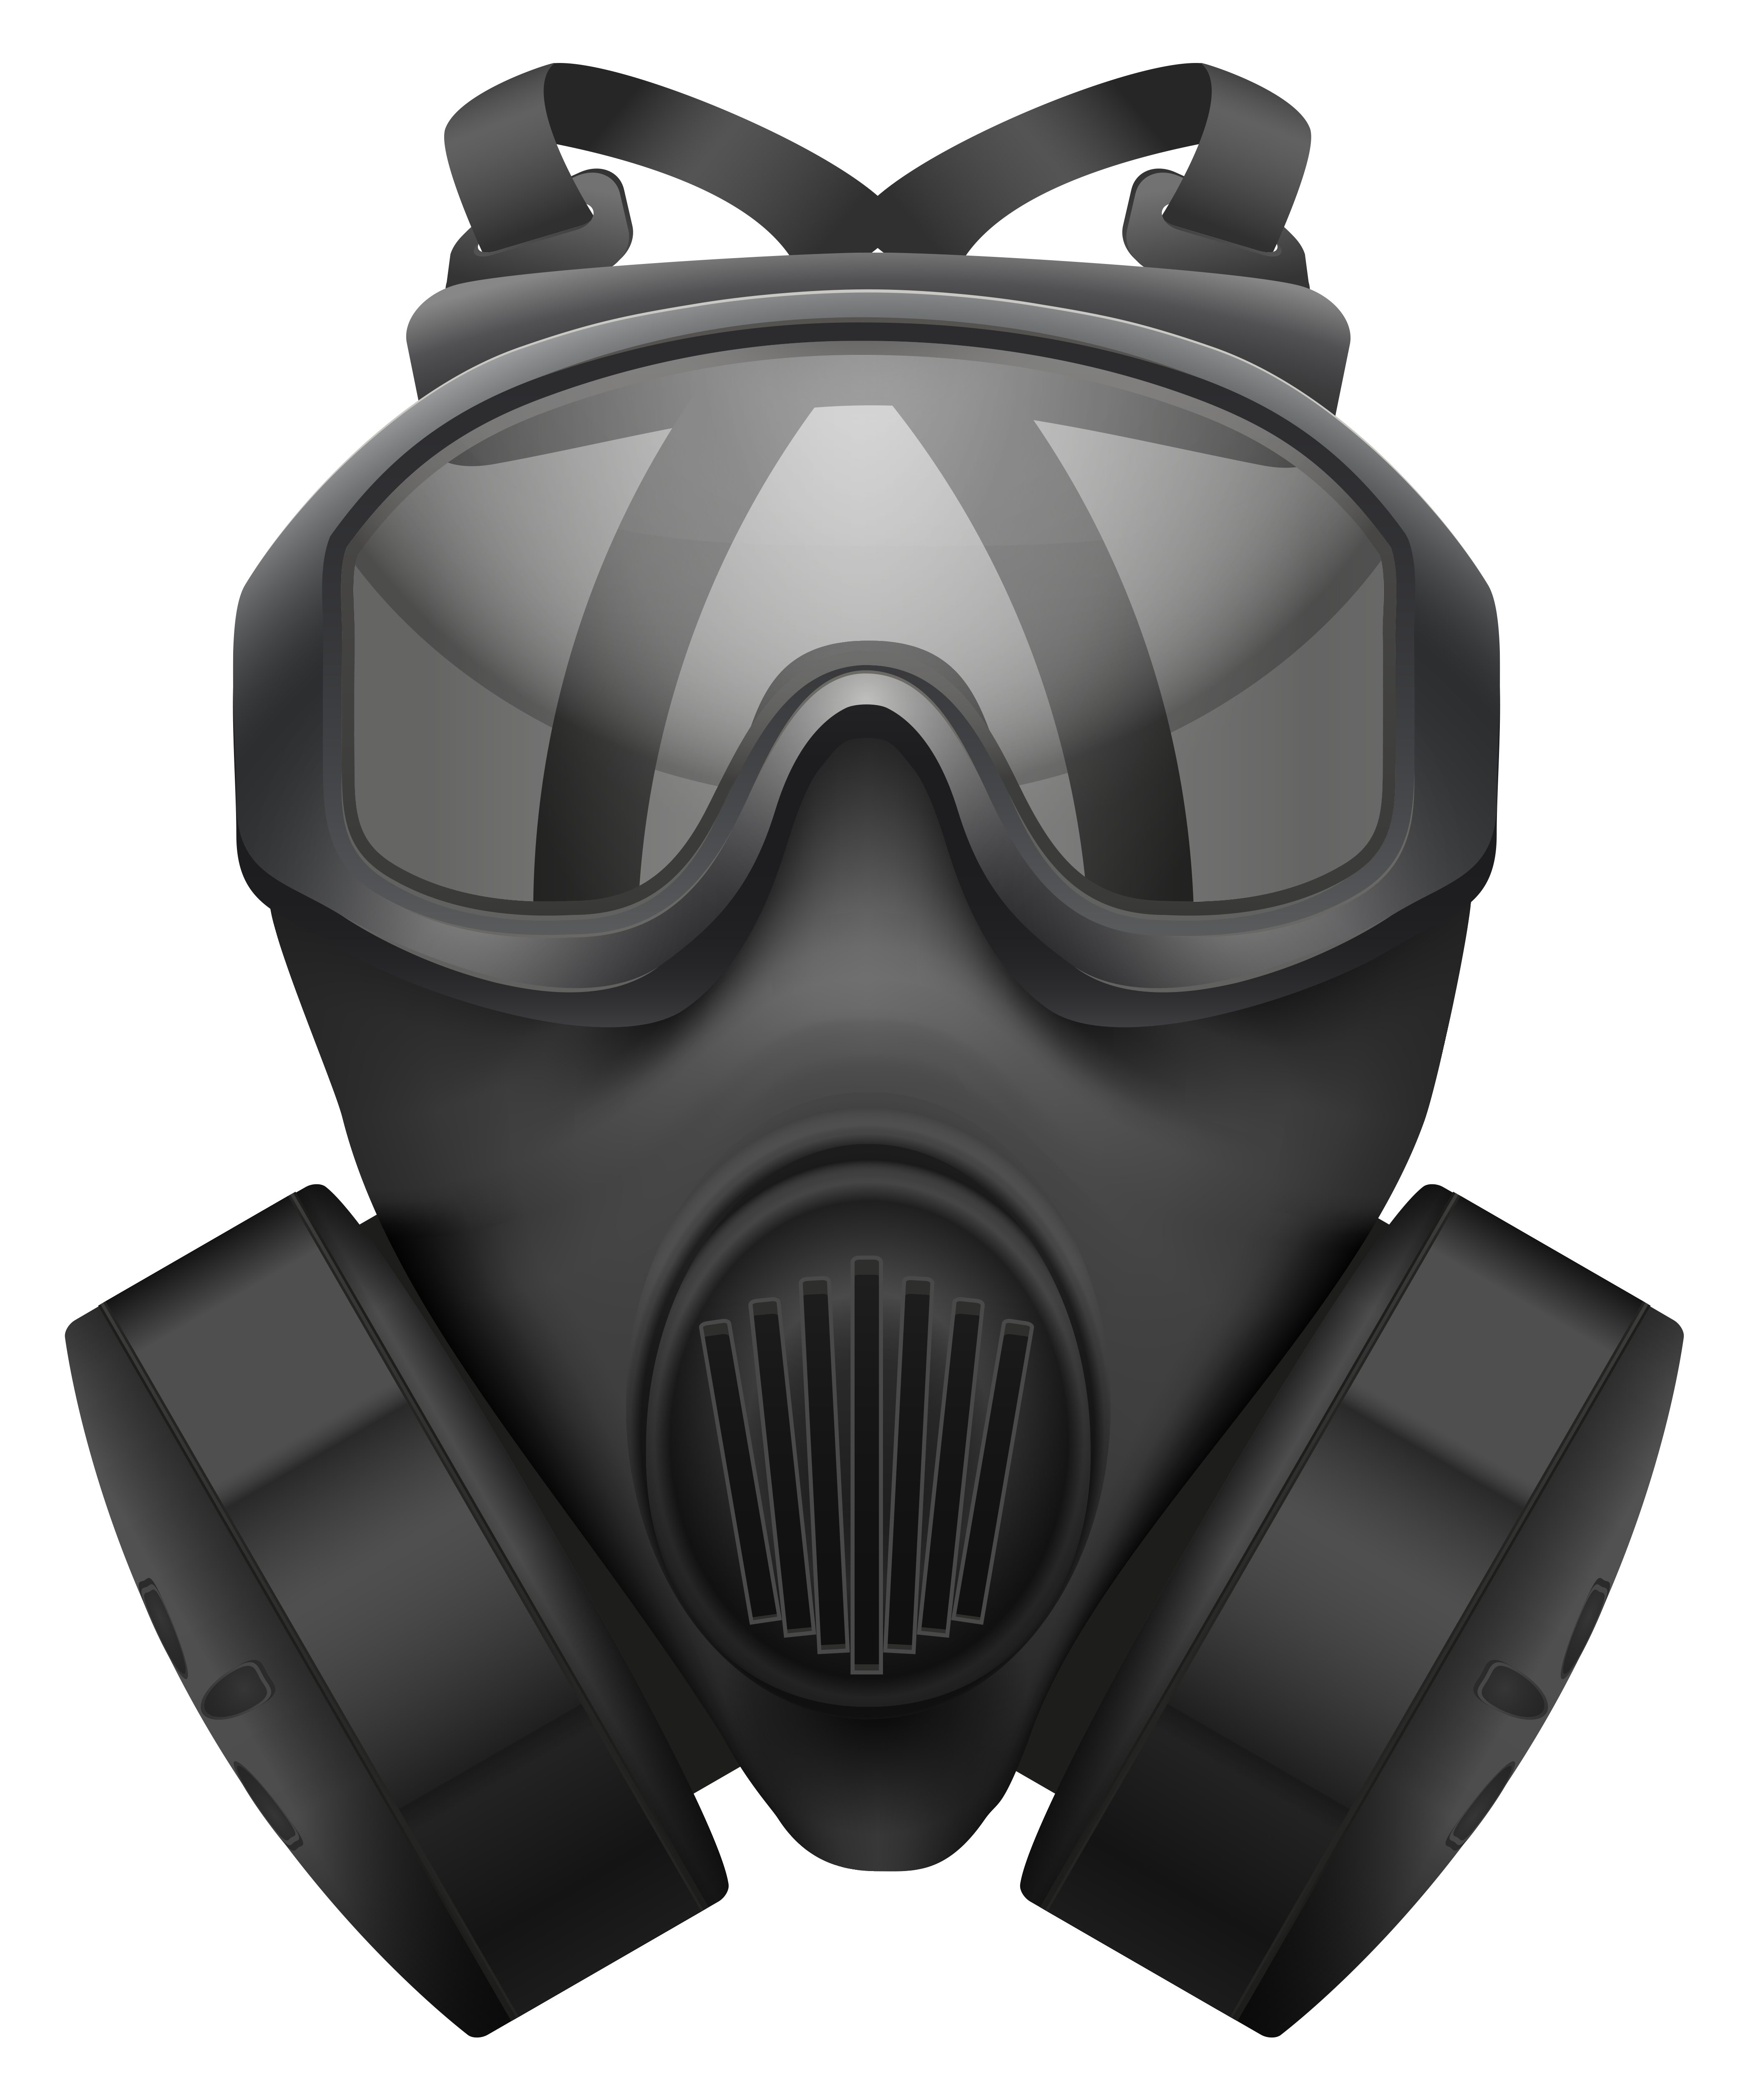 Free Gas Mask PNG Transparent Images, Download Free Clip Art.